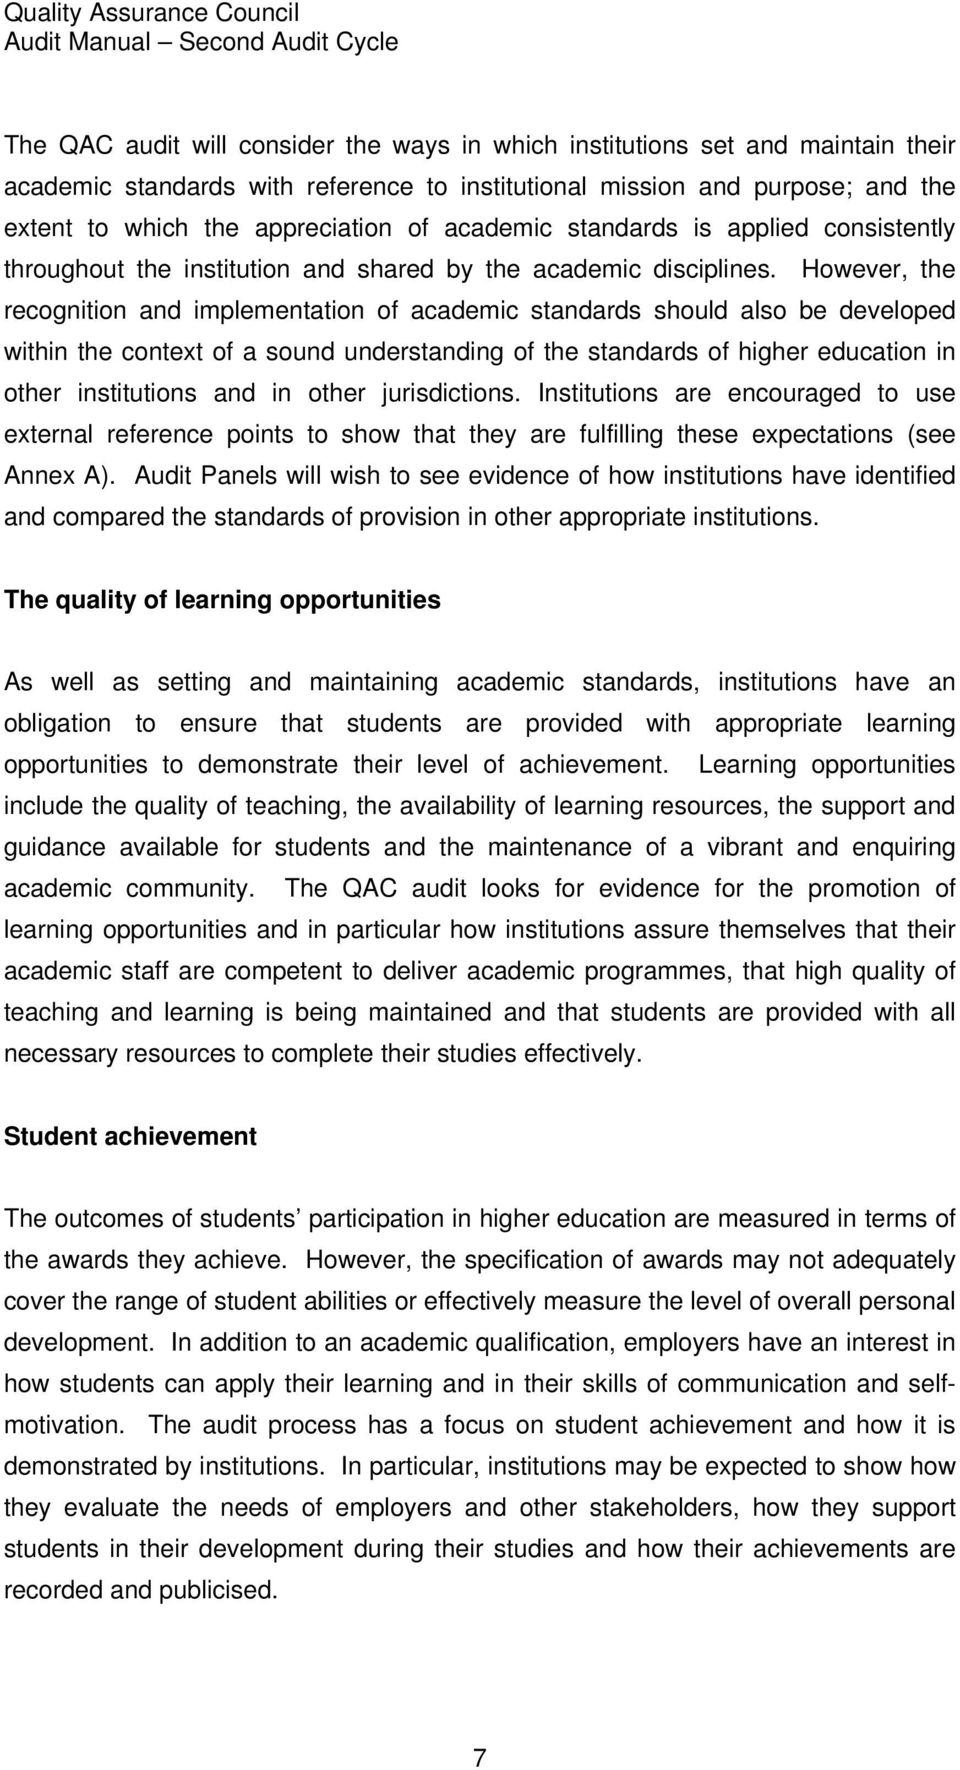 However, the recognition and implementation of academic standards should also be developed within the context of a sound understanding of the standards of higher education in other institutions and